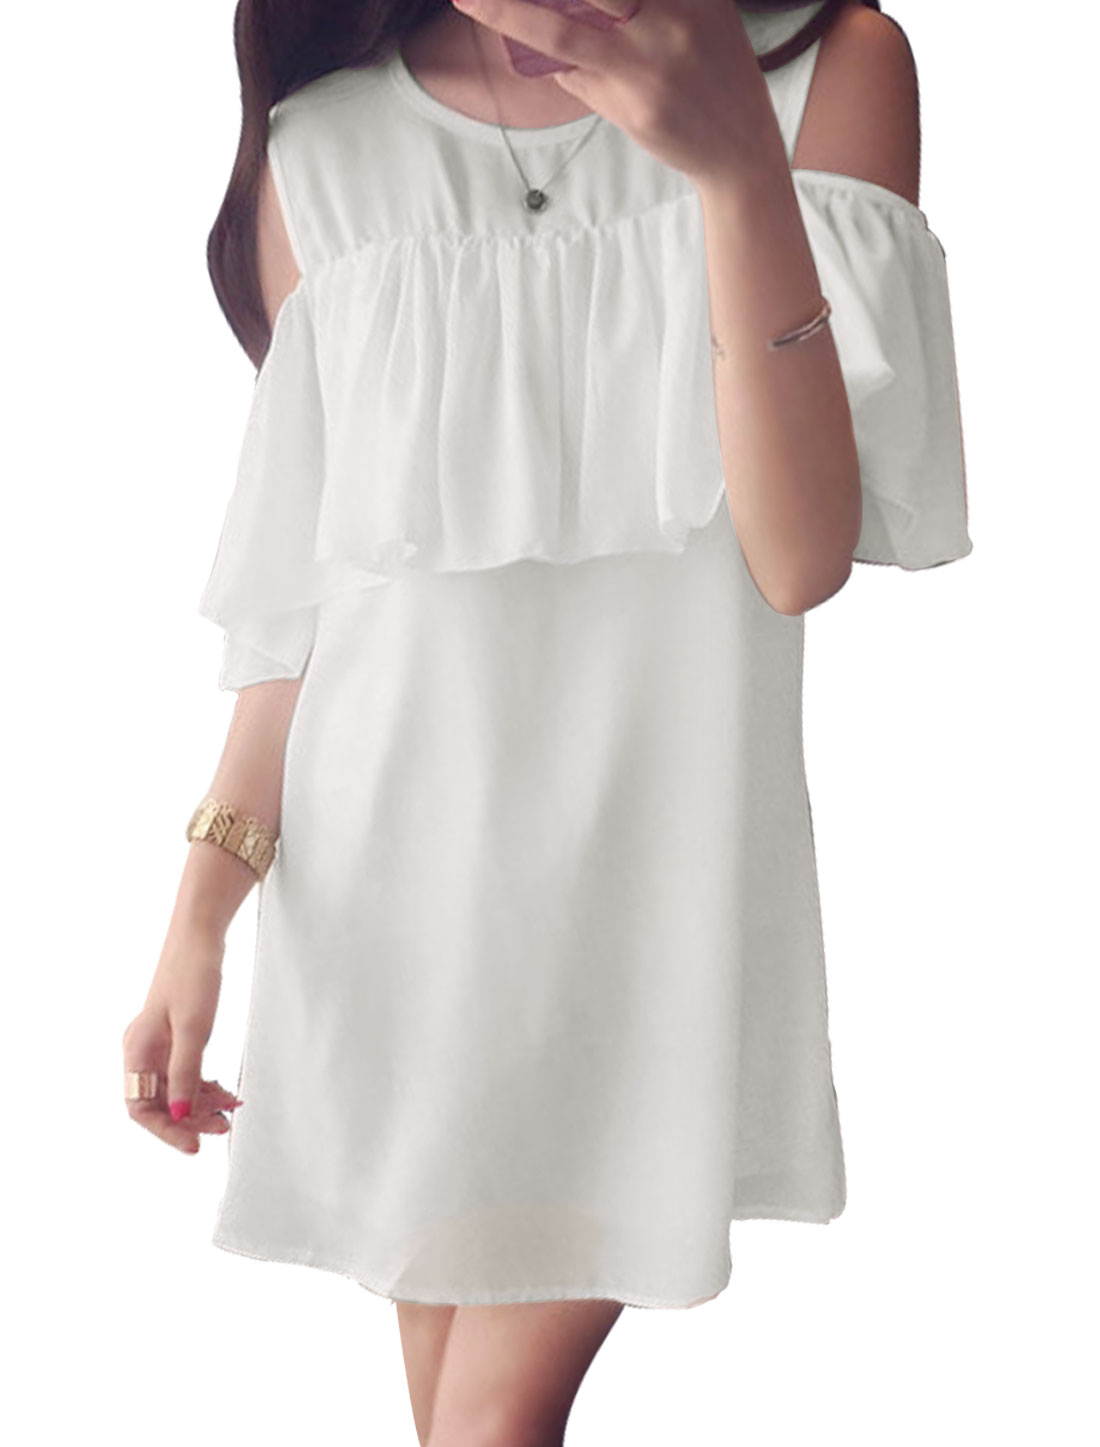 Ladies Sleeveless Round Neck Layered Fully Lined Casual Chiffon Dress White XS